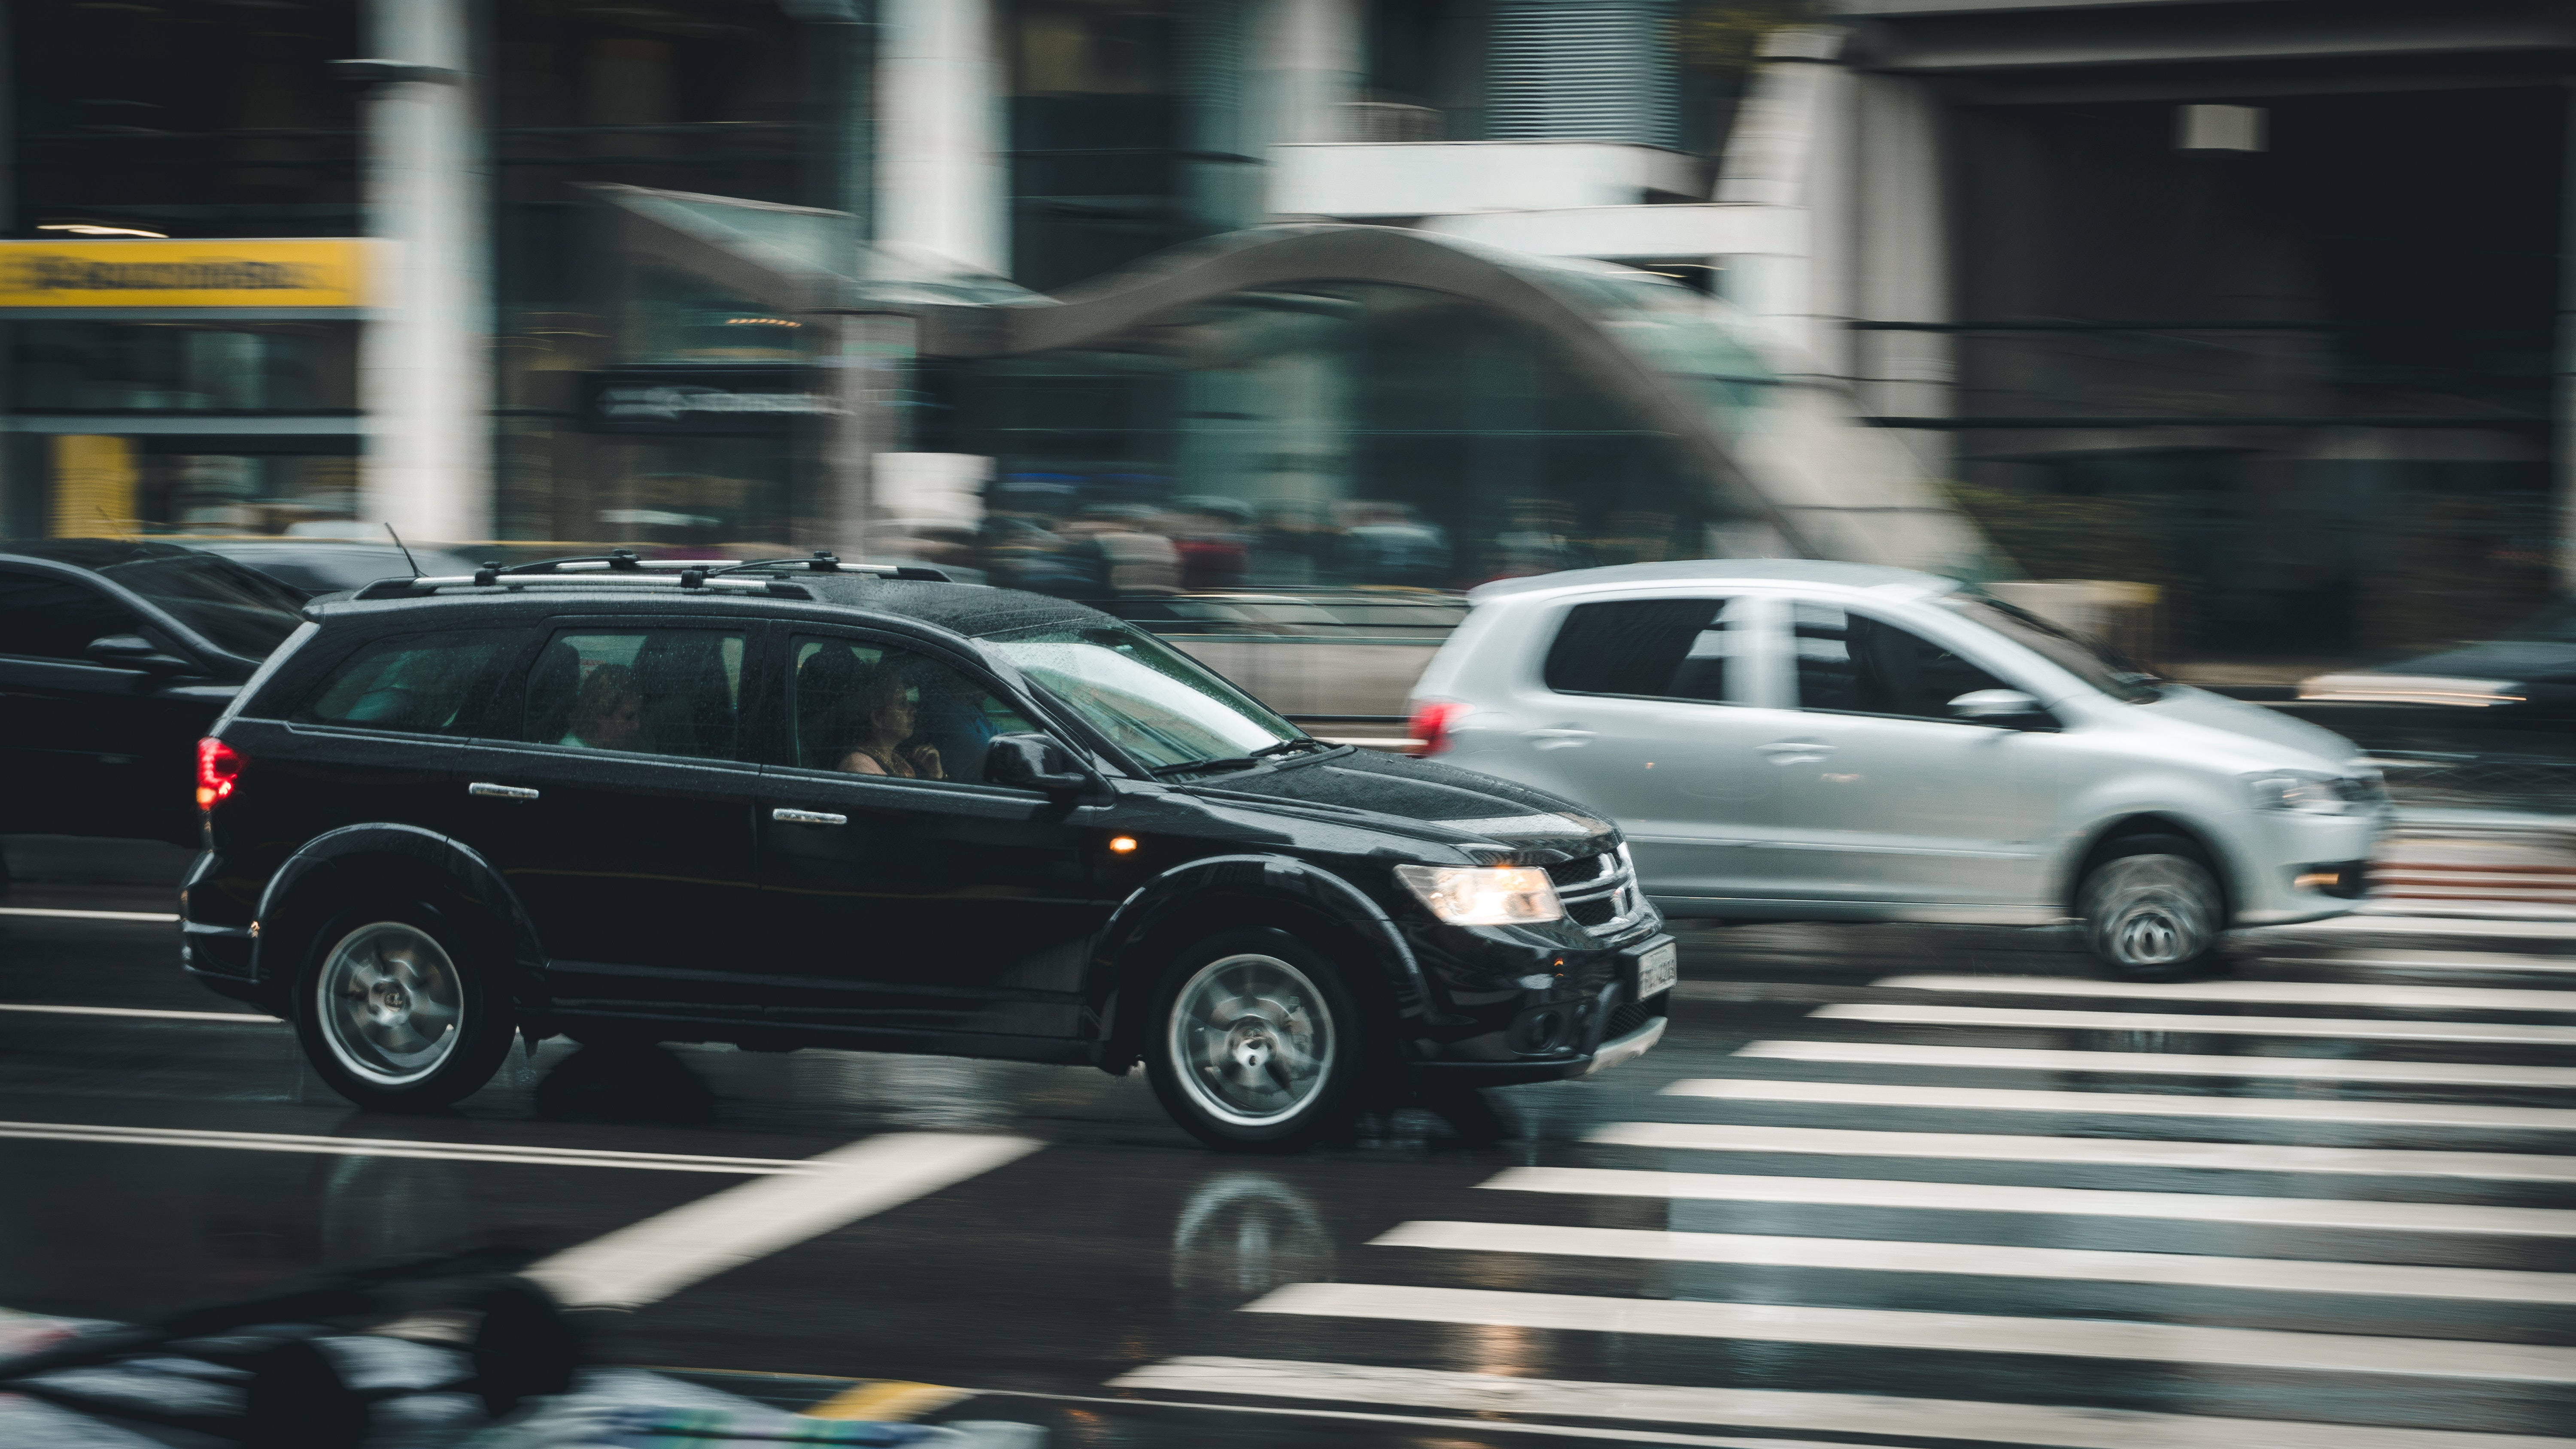 Safer Vehicle Designs May Reduce Pedestrian Fatalities